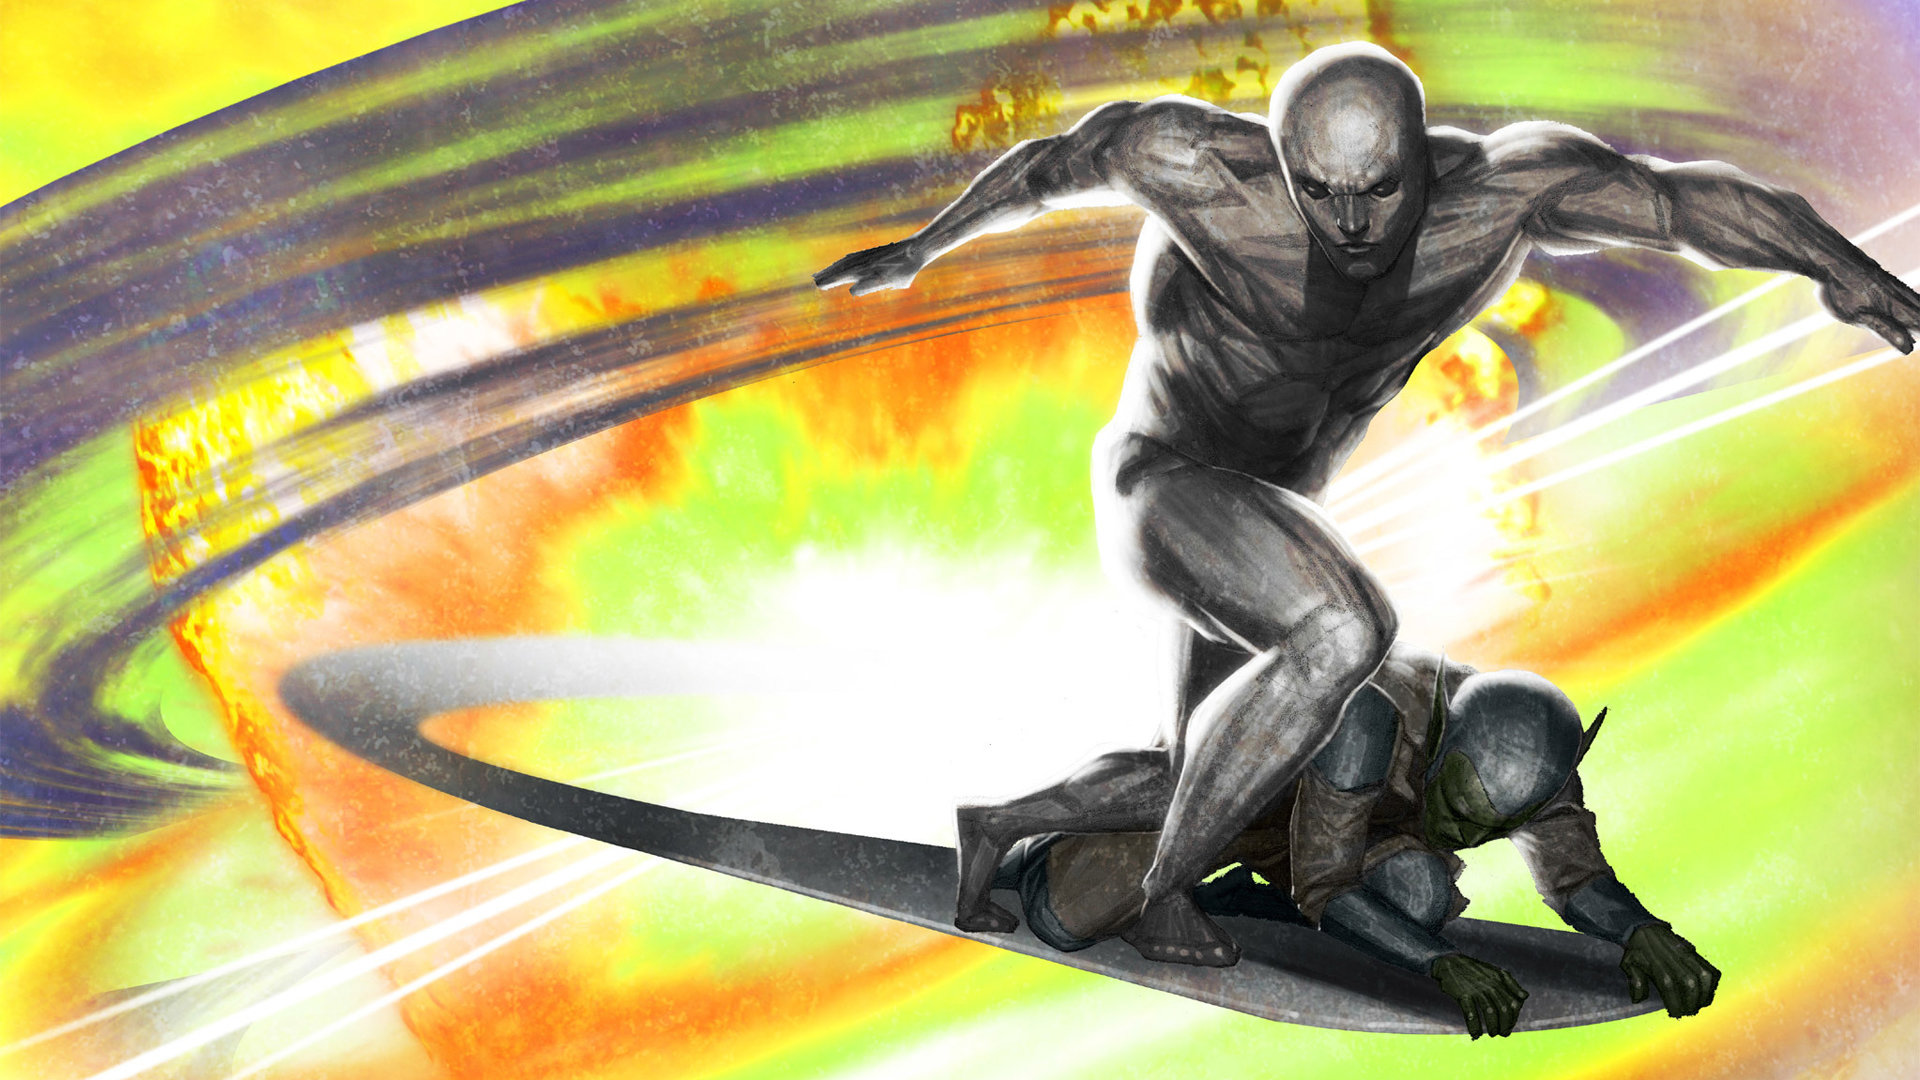 Free Silver Surfer High Quality Wallpaper Id 165159 For Hd 1080p Pc